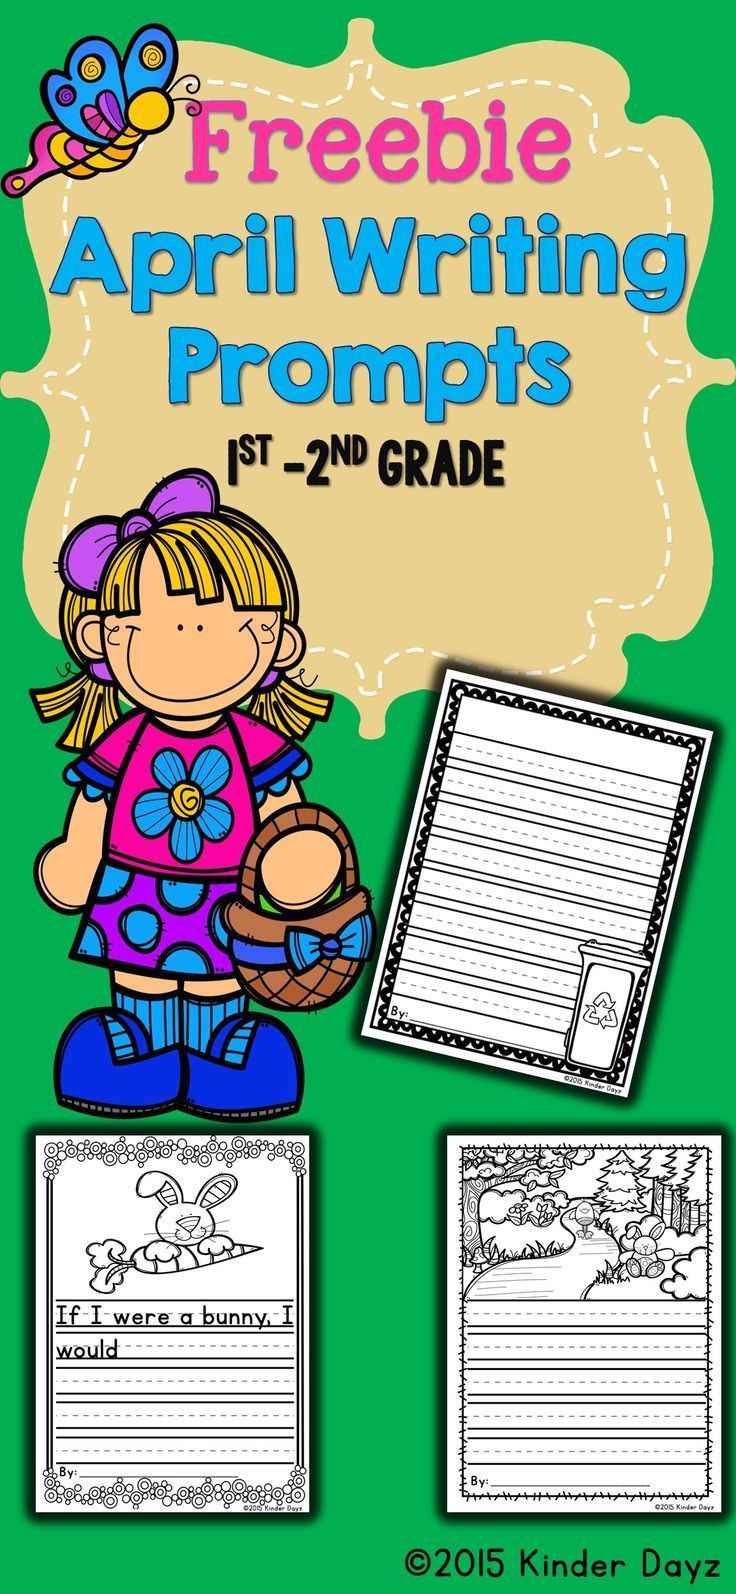 Writing Free: April Writing:This No Prep Writing packet contains many small writing activities all centered around the Easter and Earth Day. Great for primary writers K-2nd grade!  Contents include:  * 1 April Writing Activities  * 1 Free Writing Prompt S